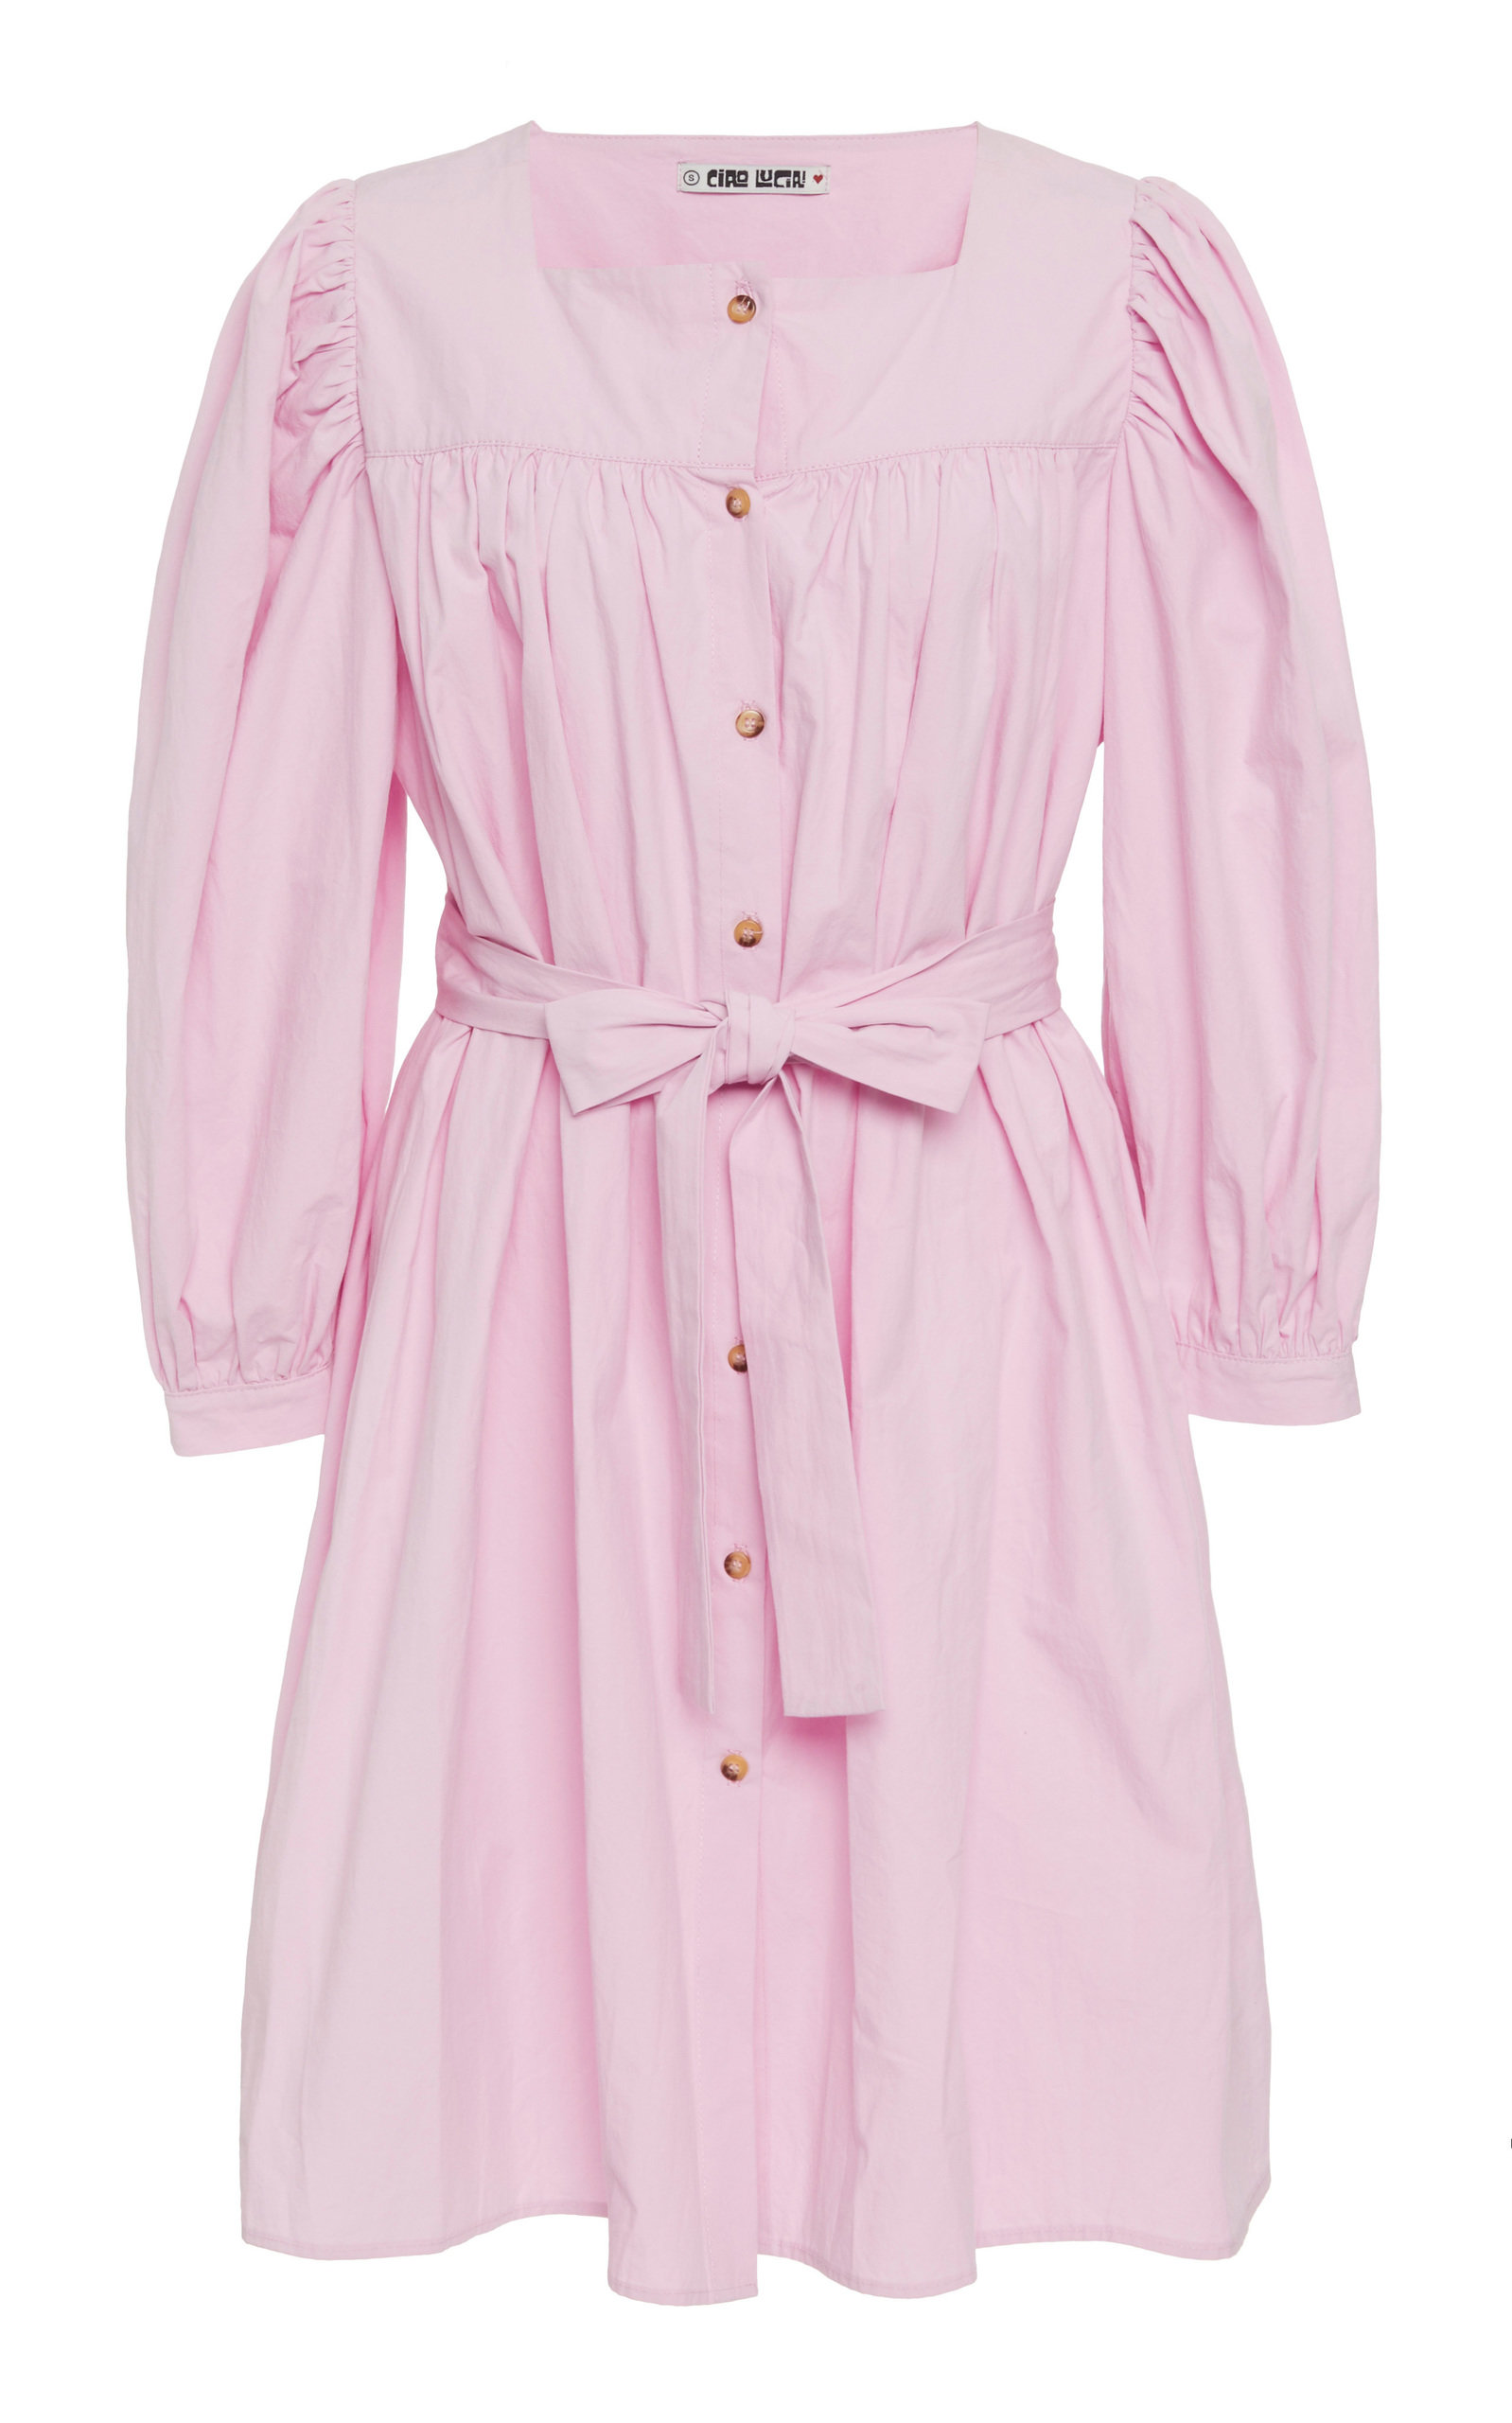 Buy Ciao Lucia Fabianna Belted Cotton Shirt Dress online, shop Ciao Lucia at the best price